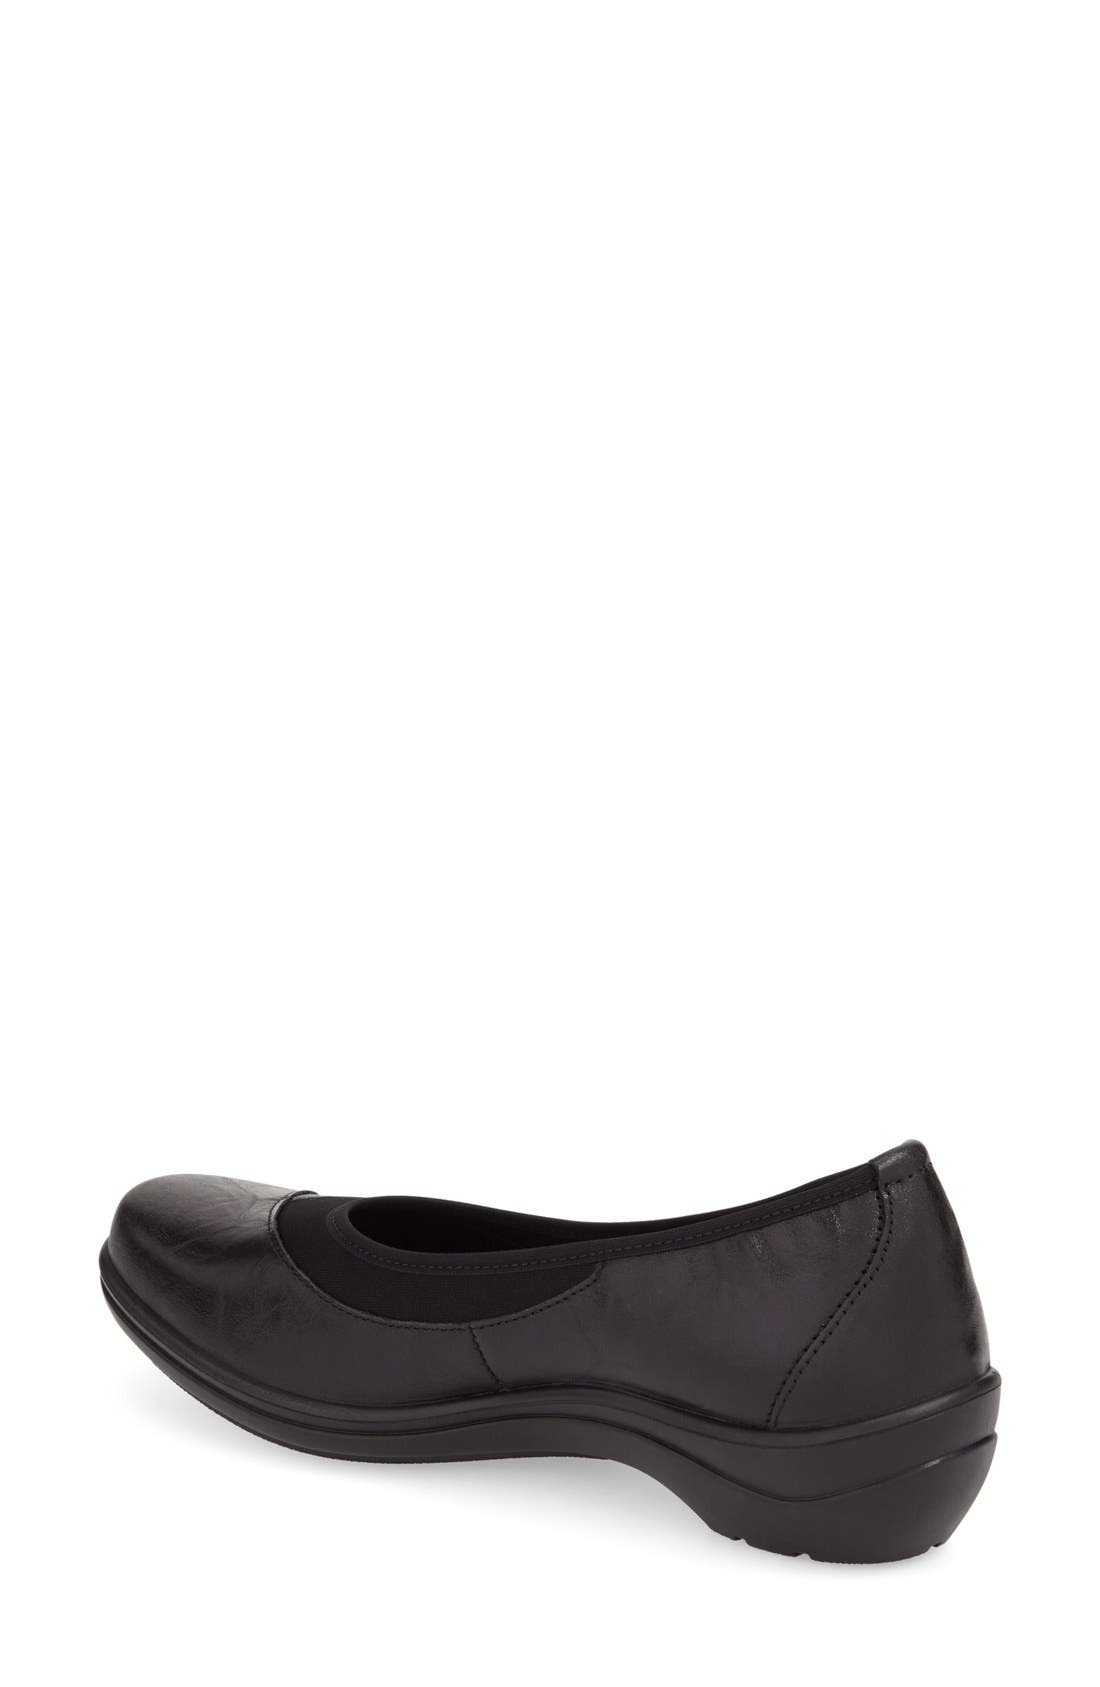 'Cassie 21' Wedge Flat,                             Alternate thumbnail 2, color,                             Black Leather